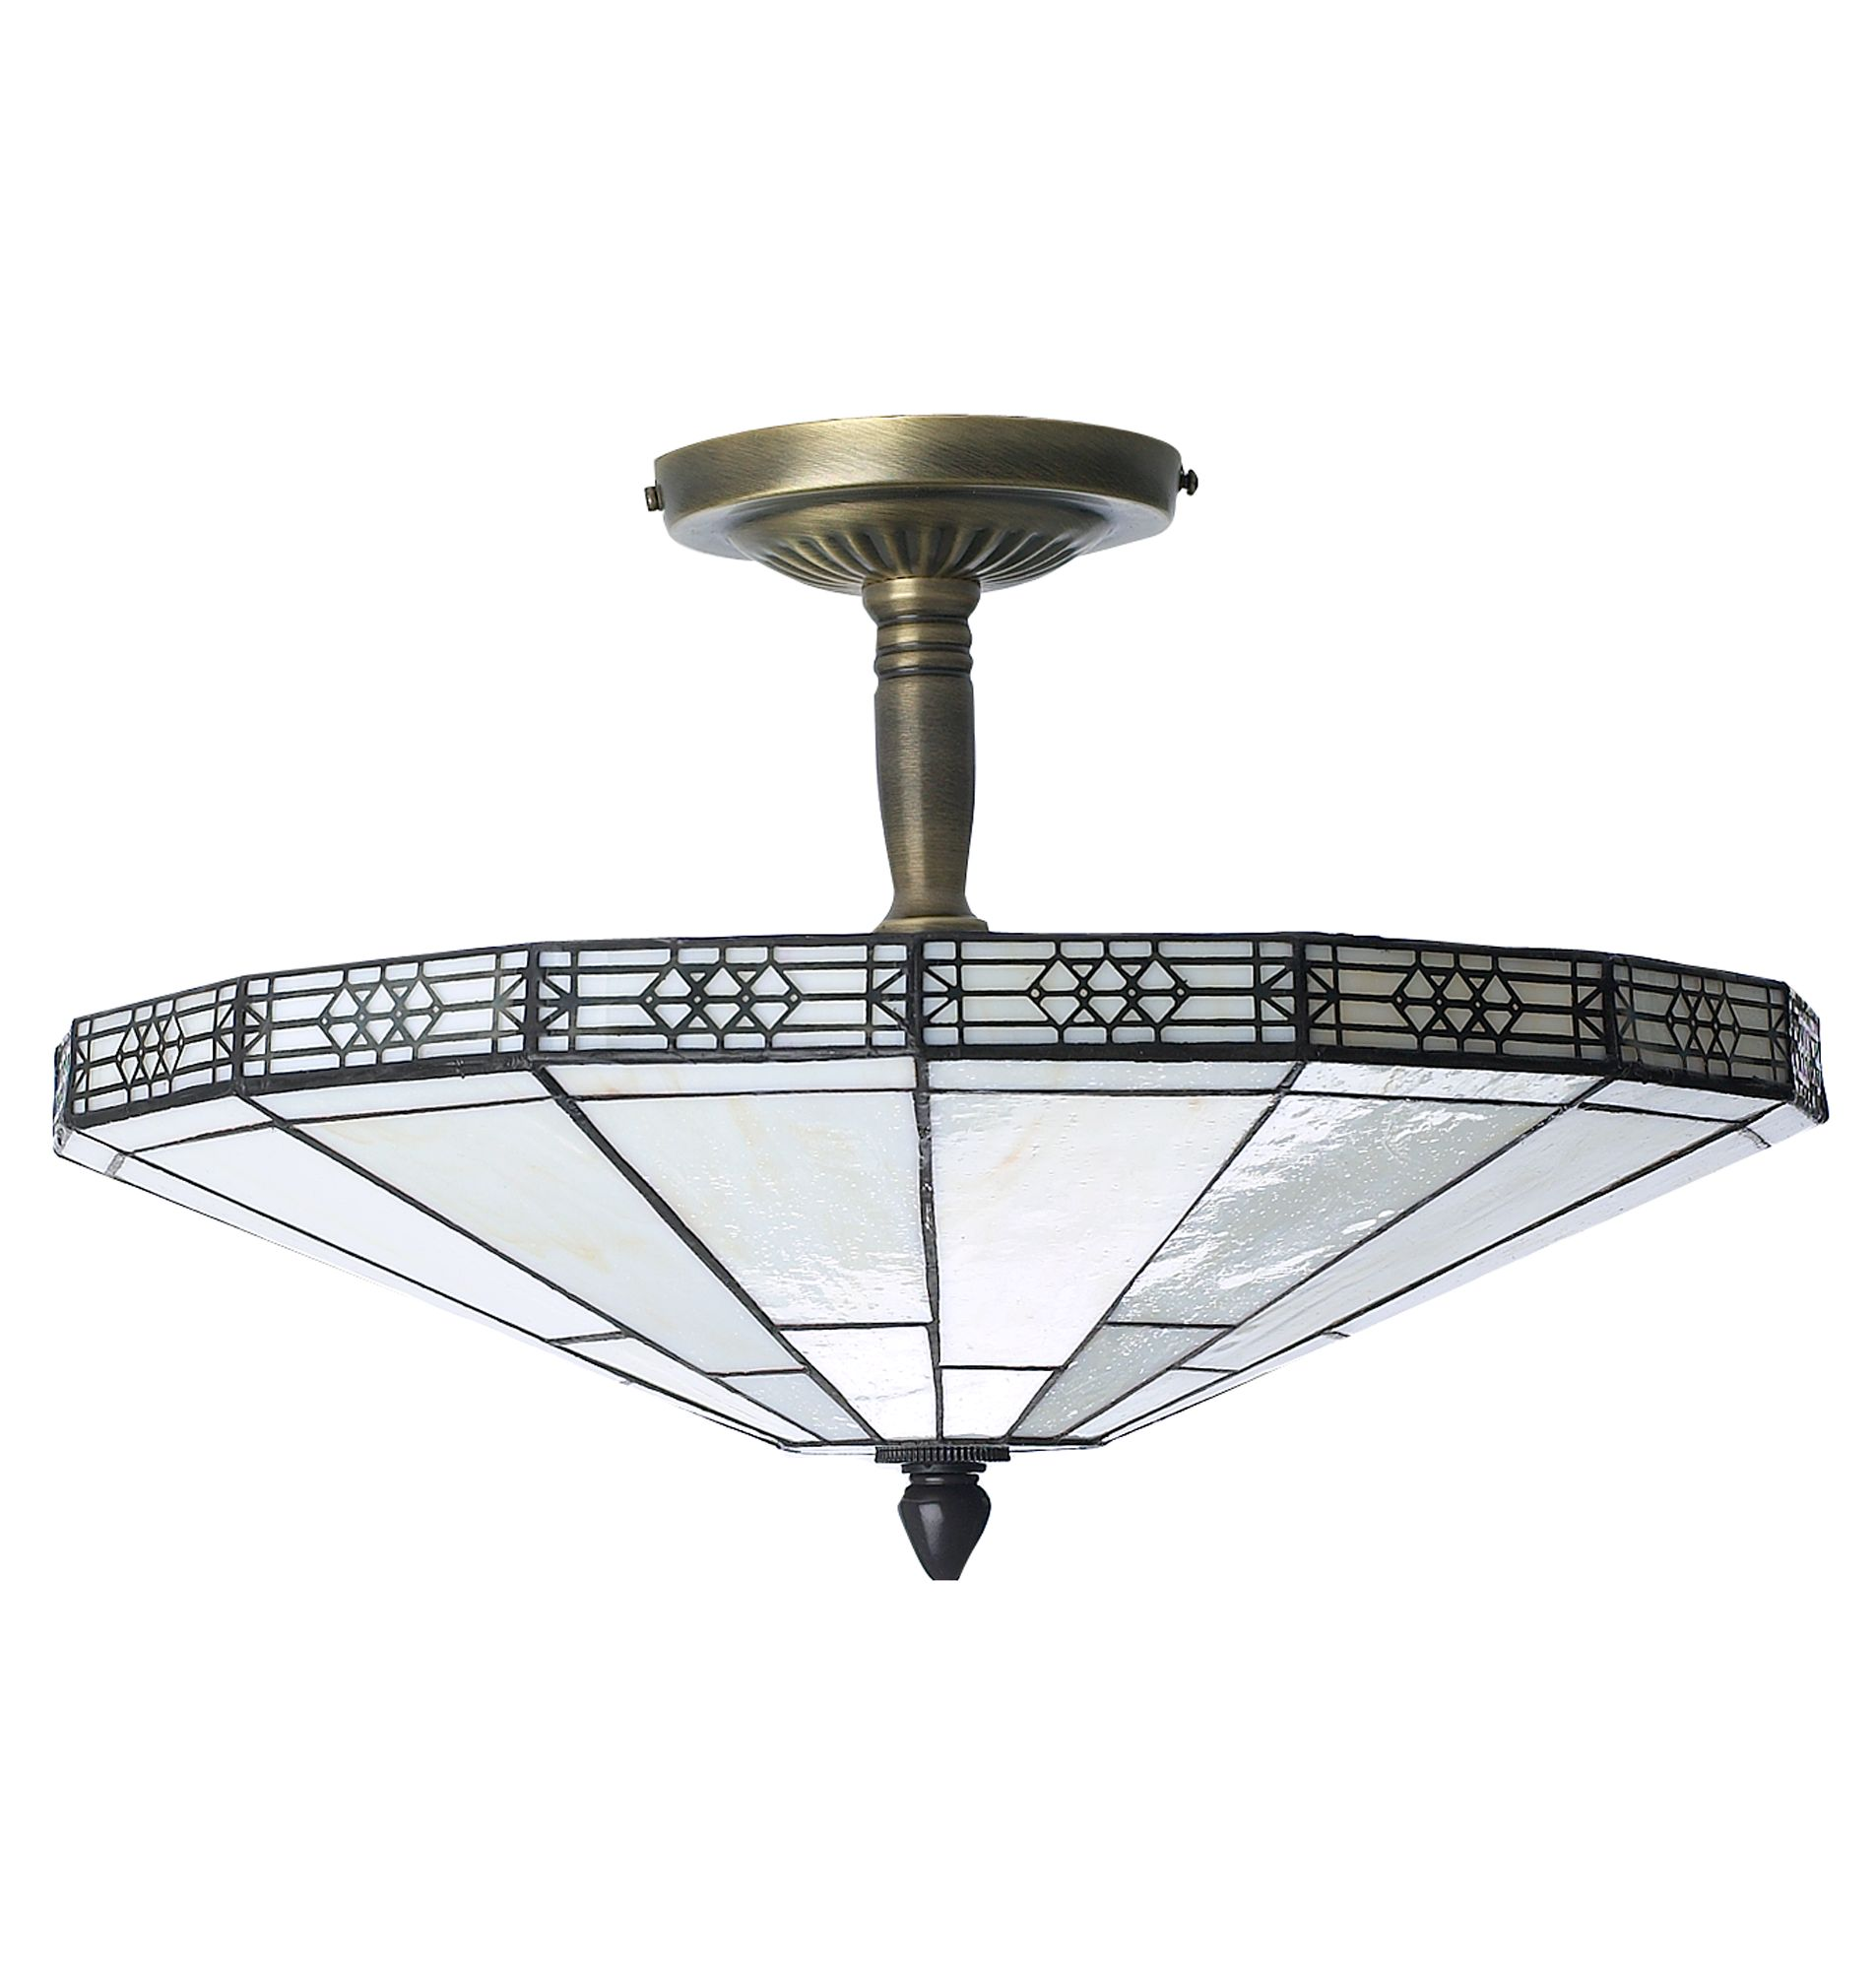 New York Tiffany ceiling light by House of Fraser